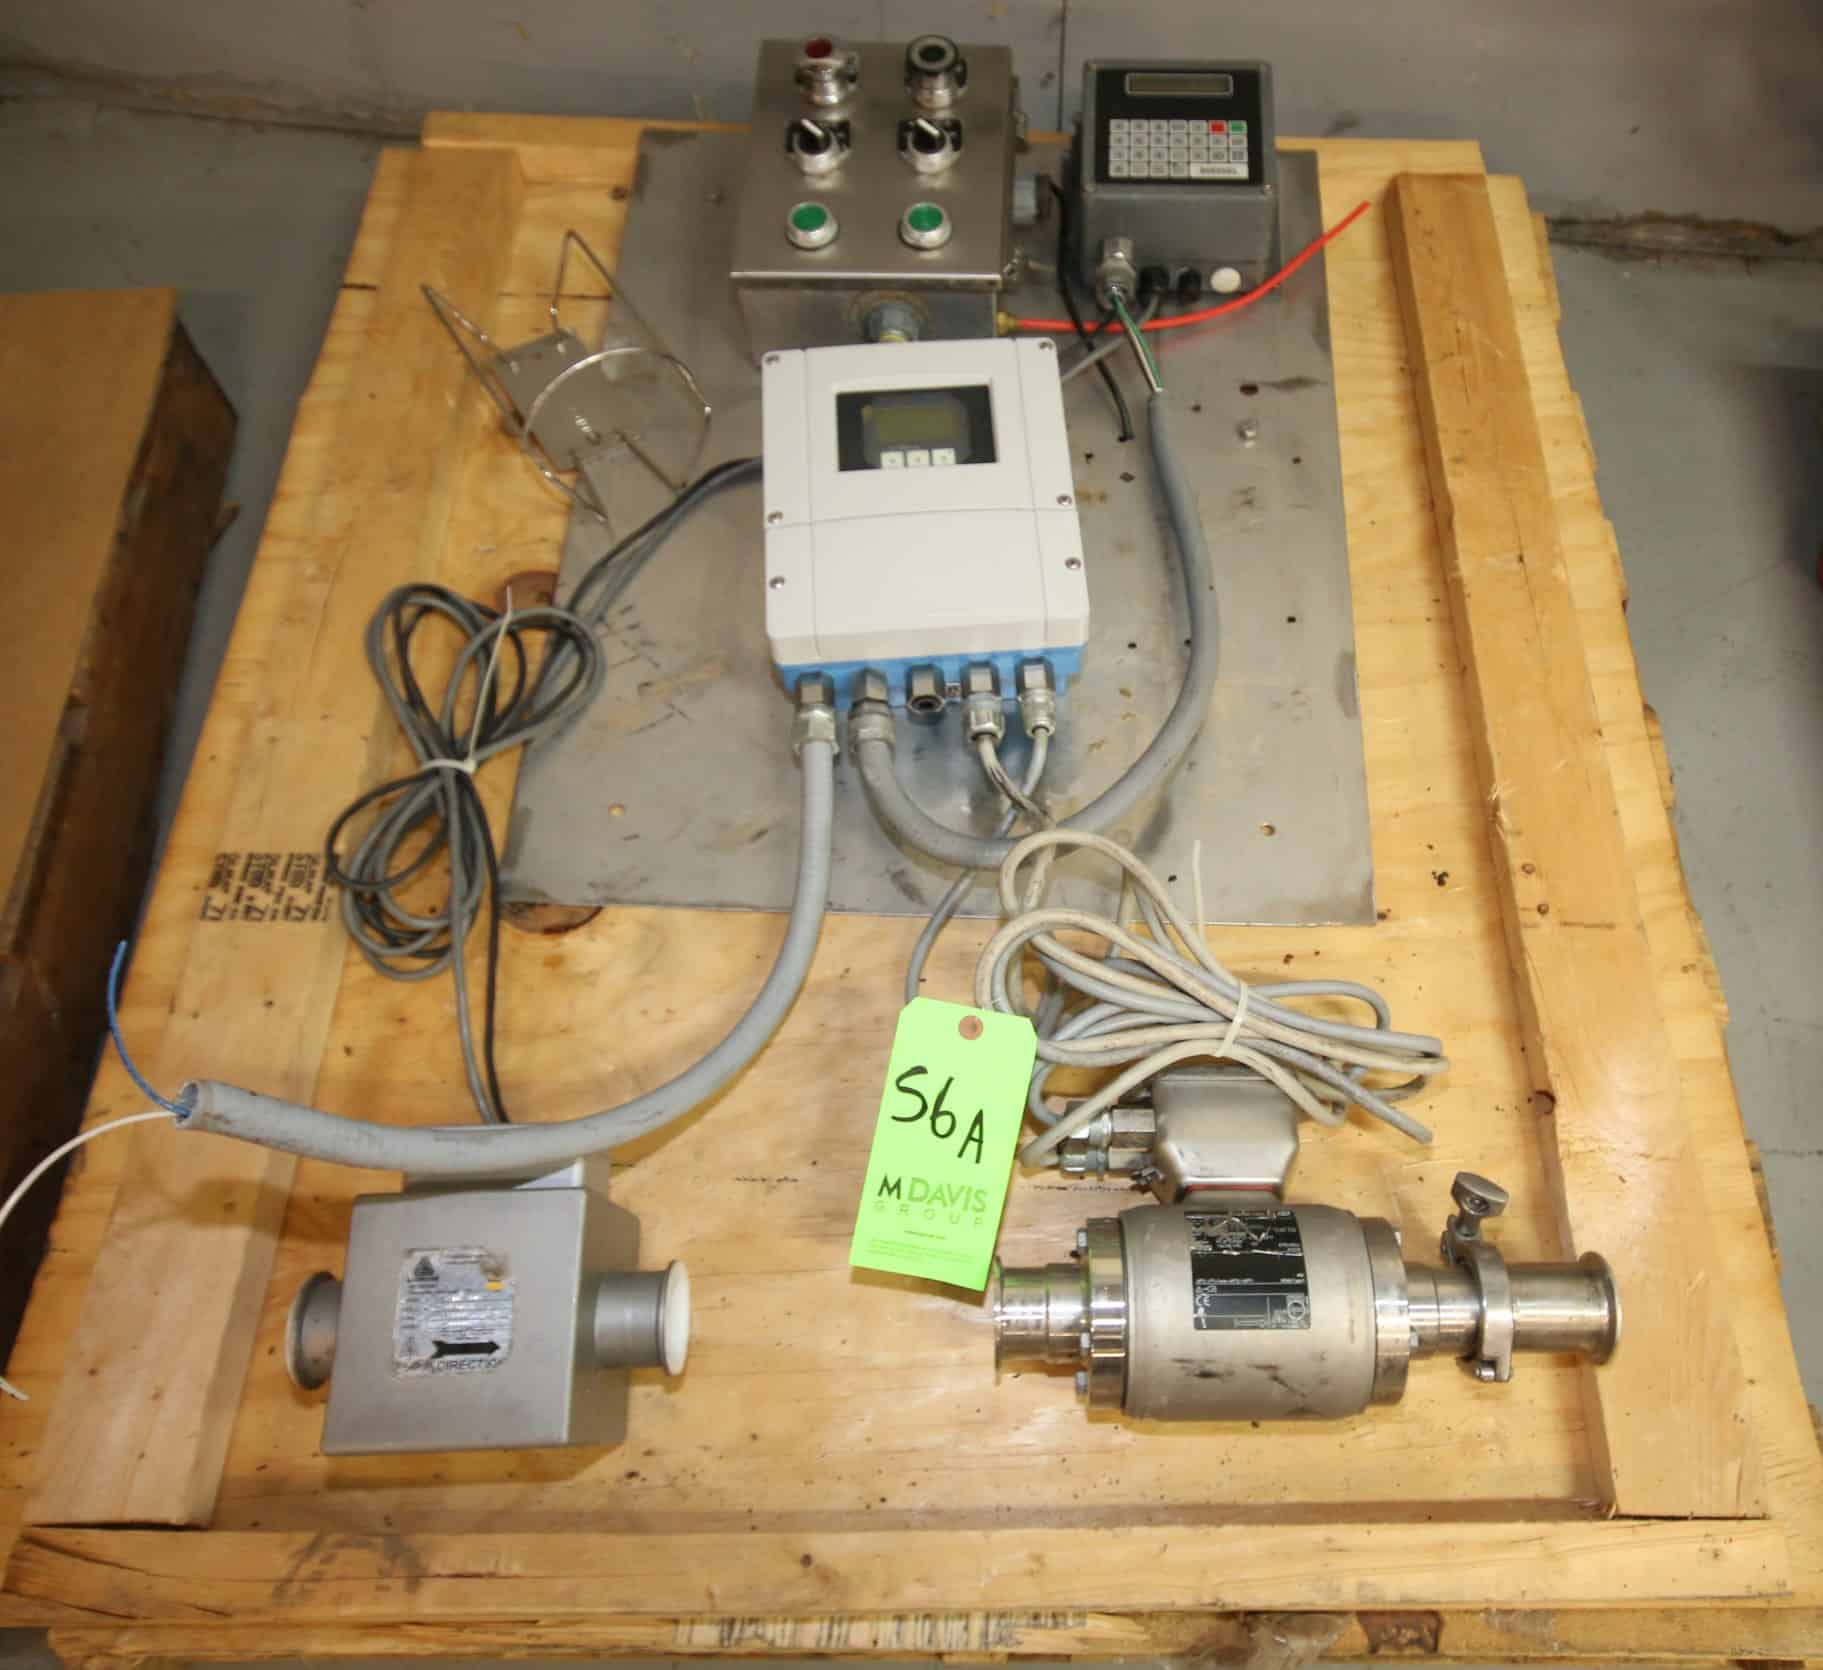 "Blender Flow Meter System includes Anderson 2"" Flow Meter, Model IZMS-50D with Diessel Read-Out, Endress+Hauser 2"" Clamp Type S/S Flow Meter with Digital Read-Out and Some Controls"